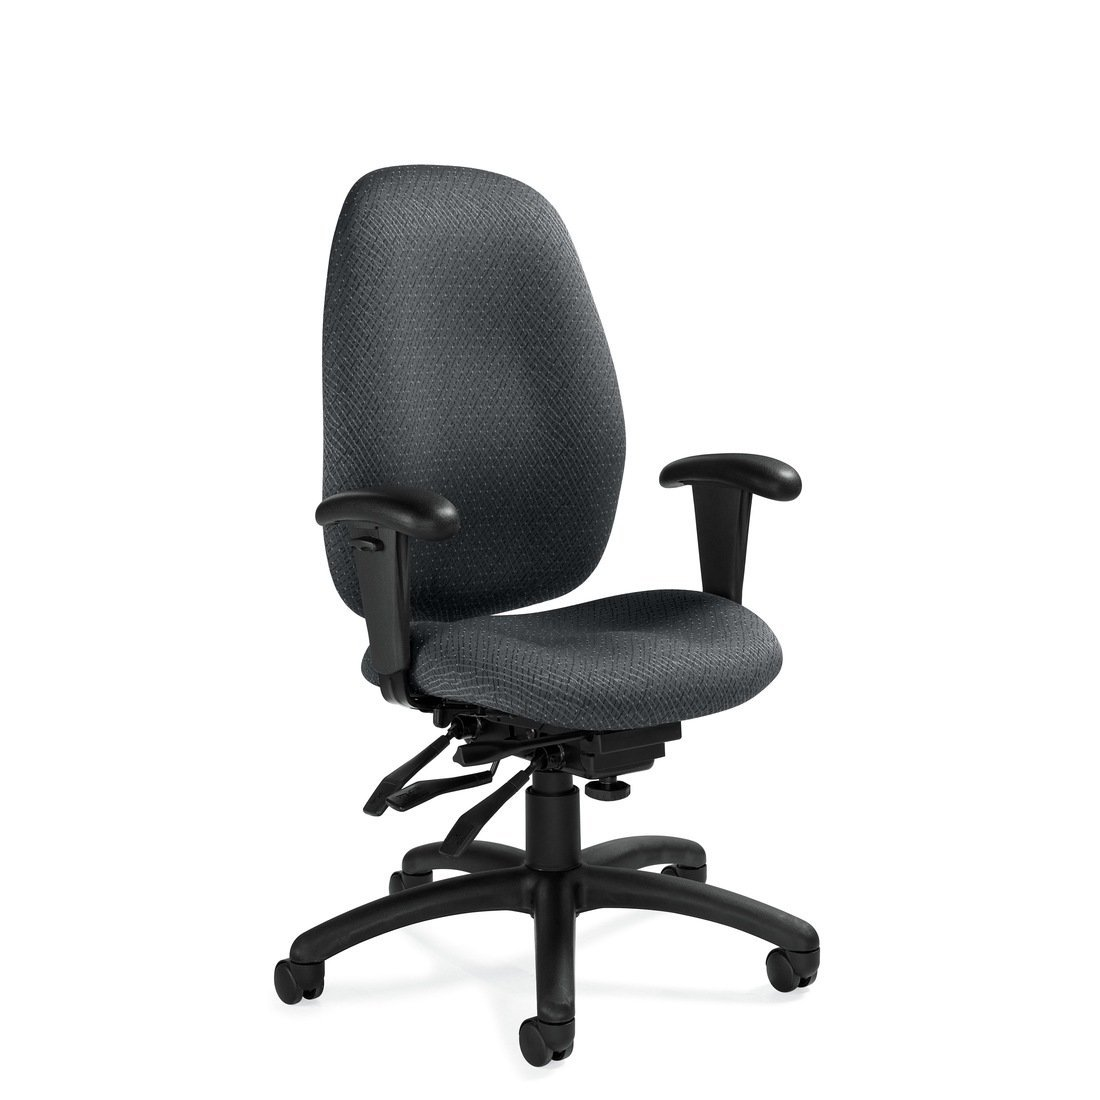 Malaga high back multi-tilter chair, model 3140-3. This chair has been placed on a white background.